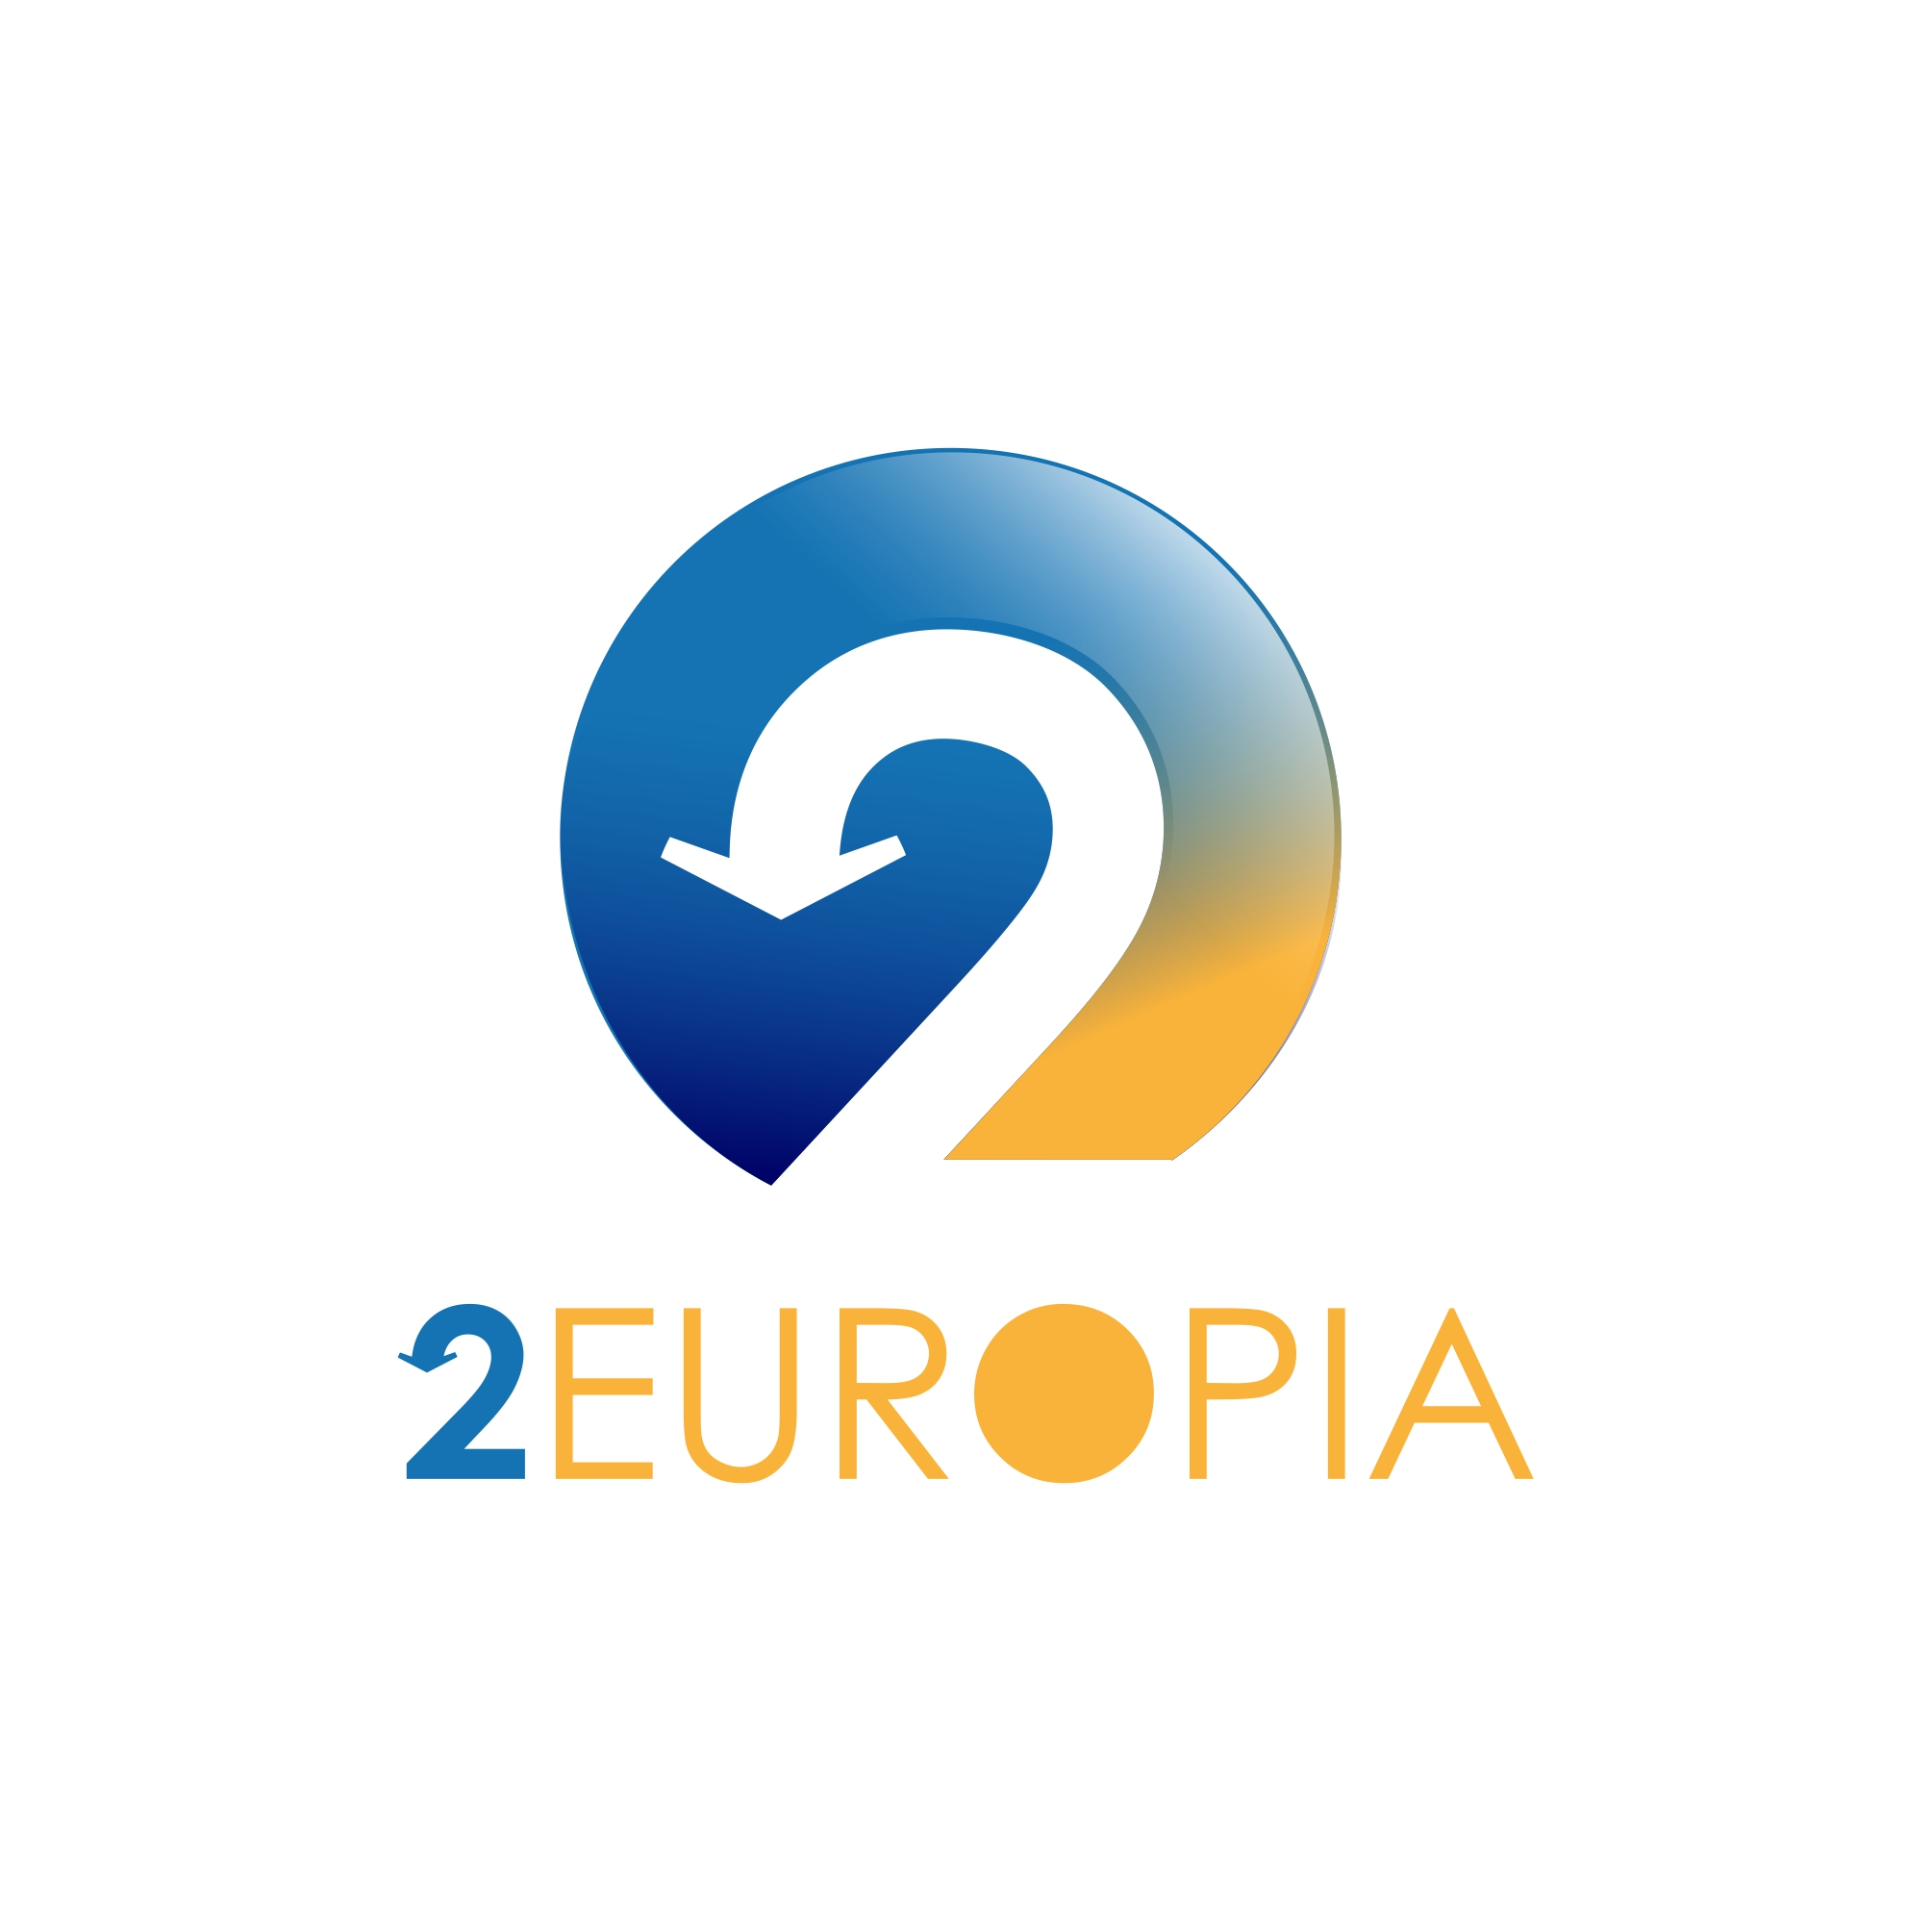 Color-2europia-logotipo